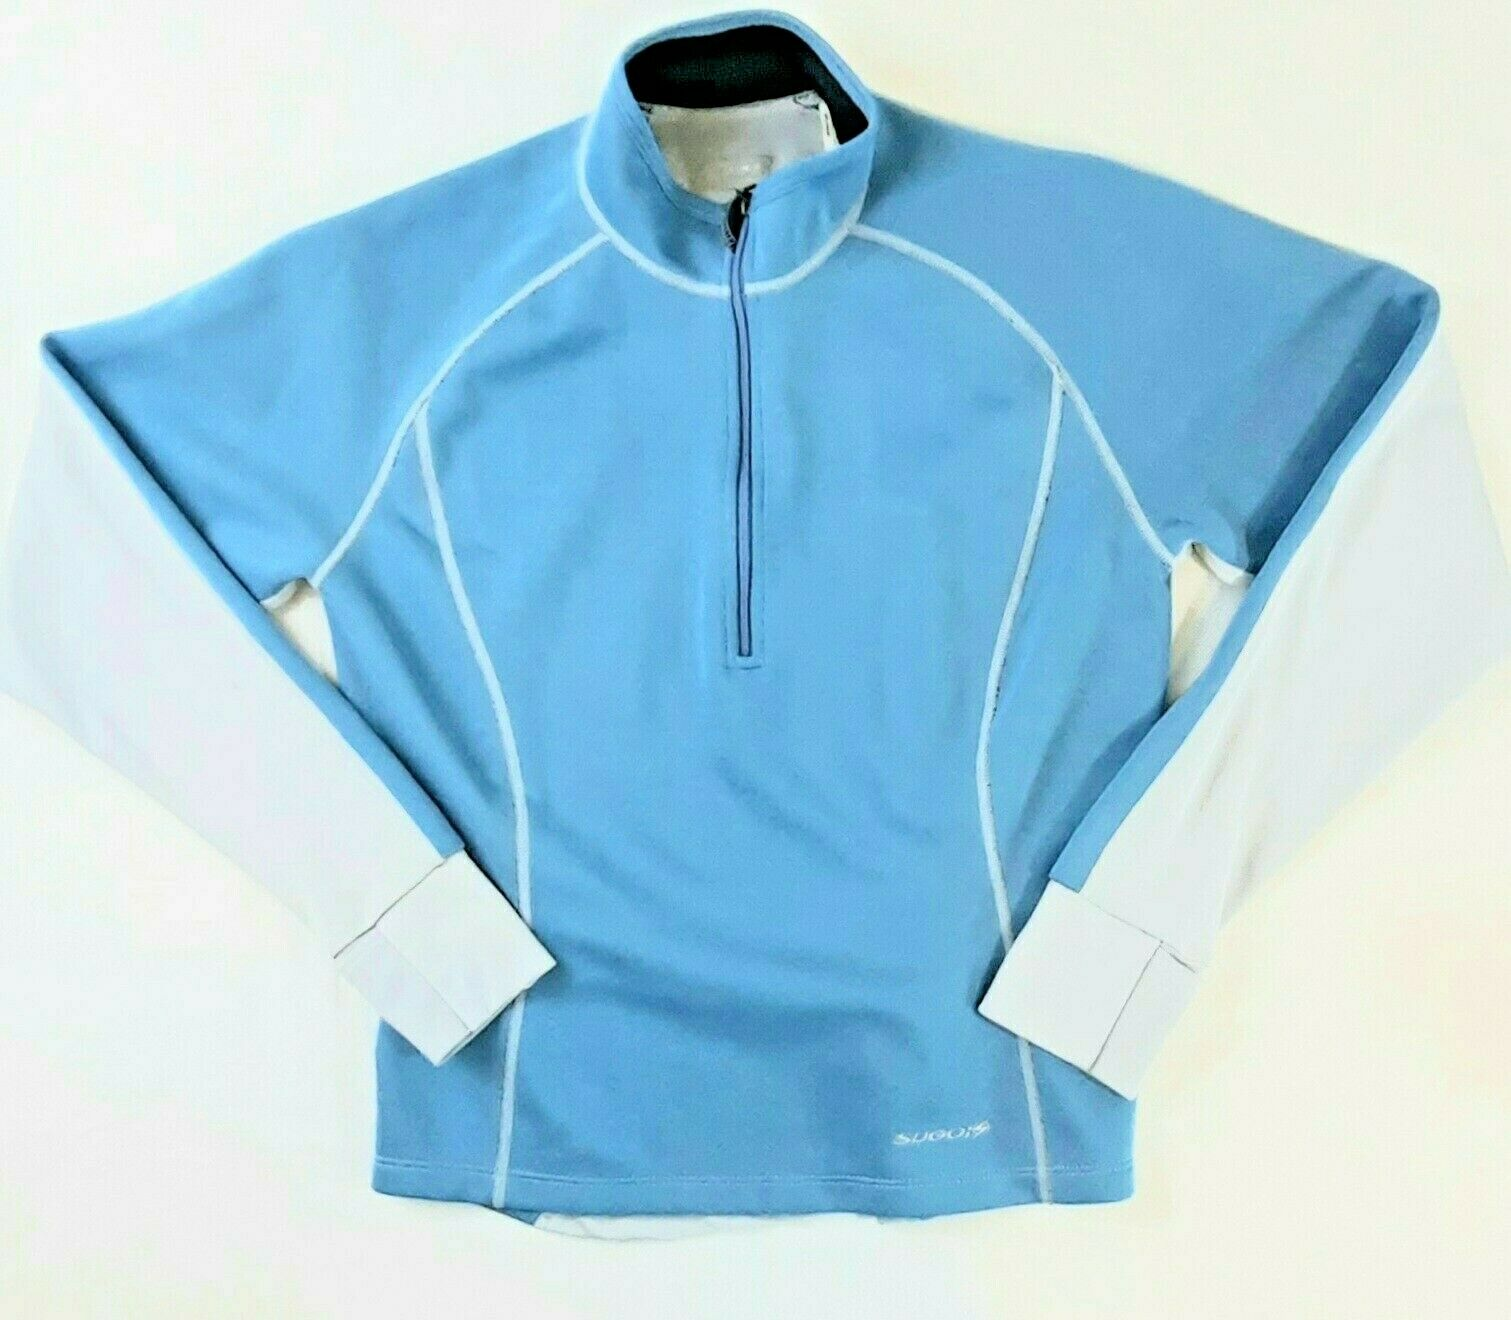 Sugoi Women's Small Cycling Blue & Gray 1/2 Zip Semi-Fitted Pullover LS Shirt